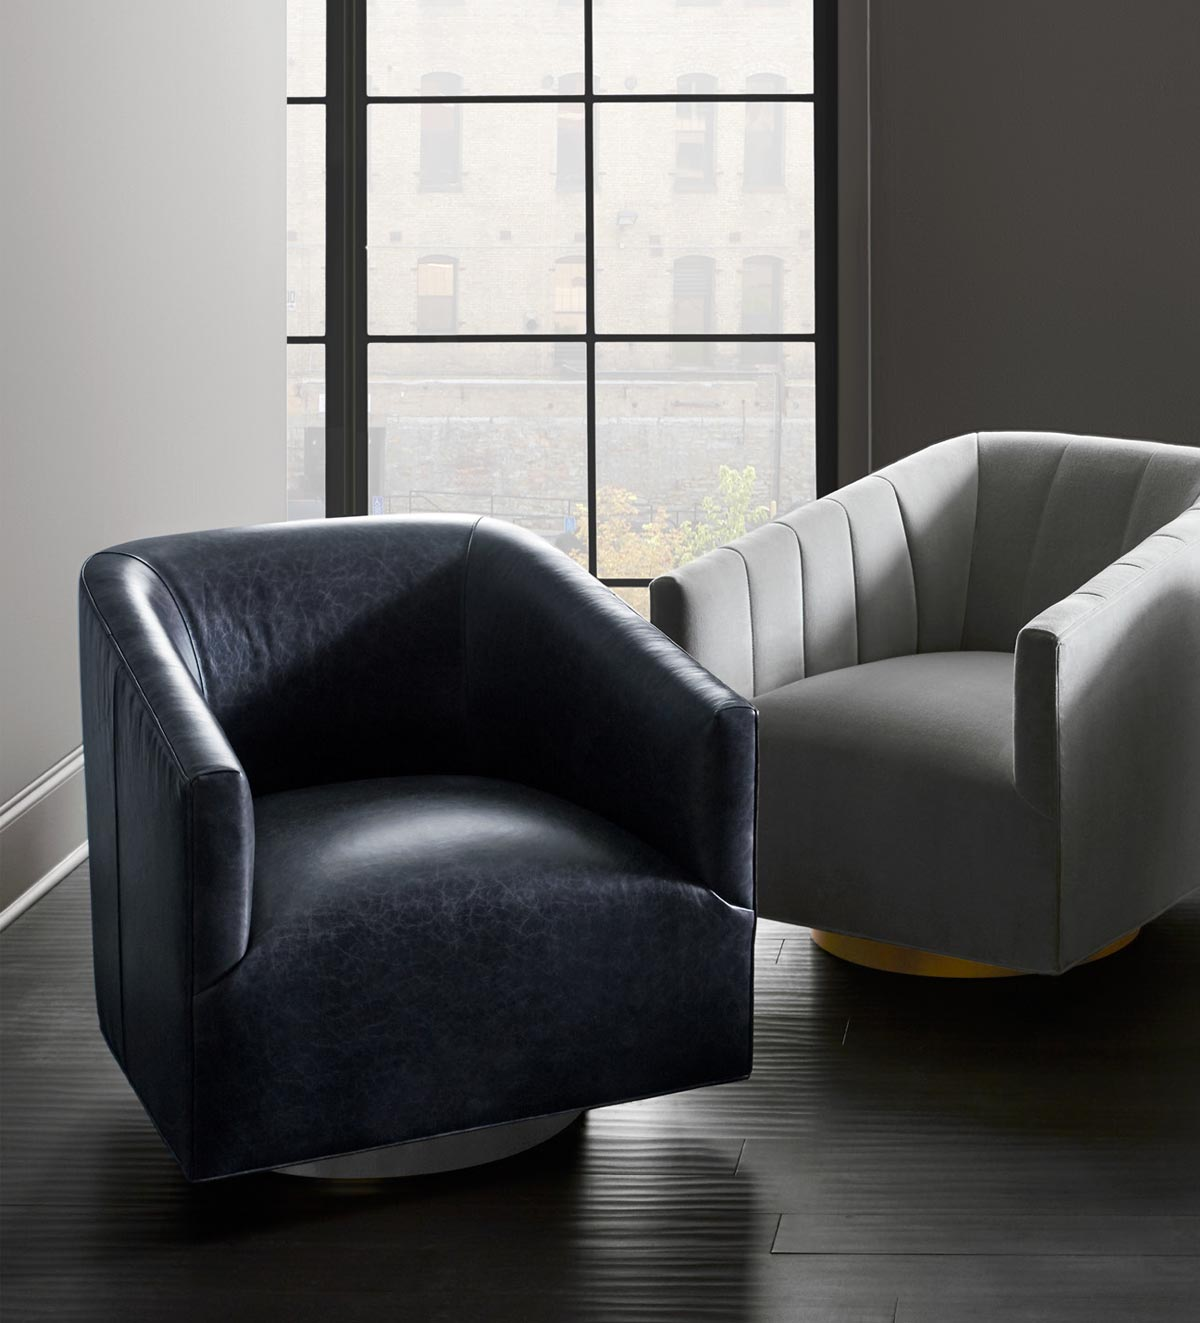 Shop Chairs and Seating Imagery